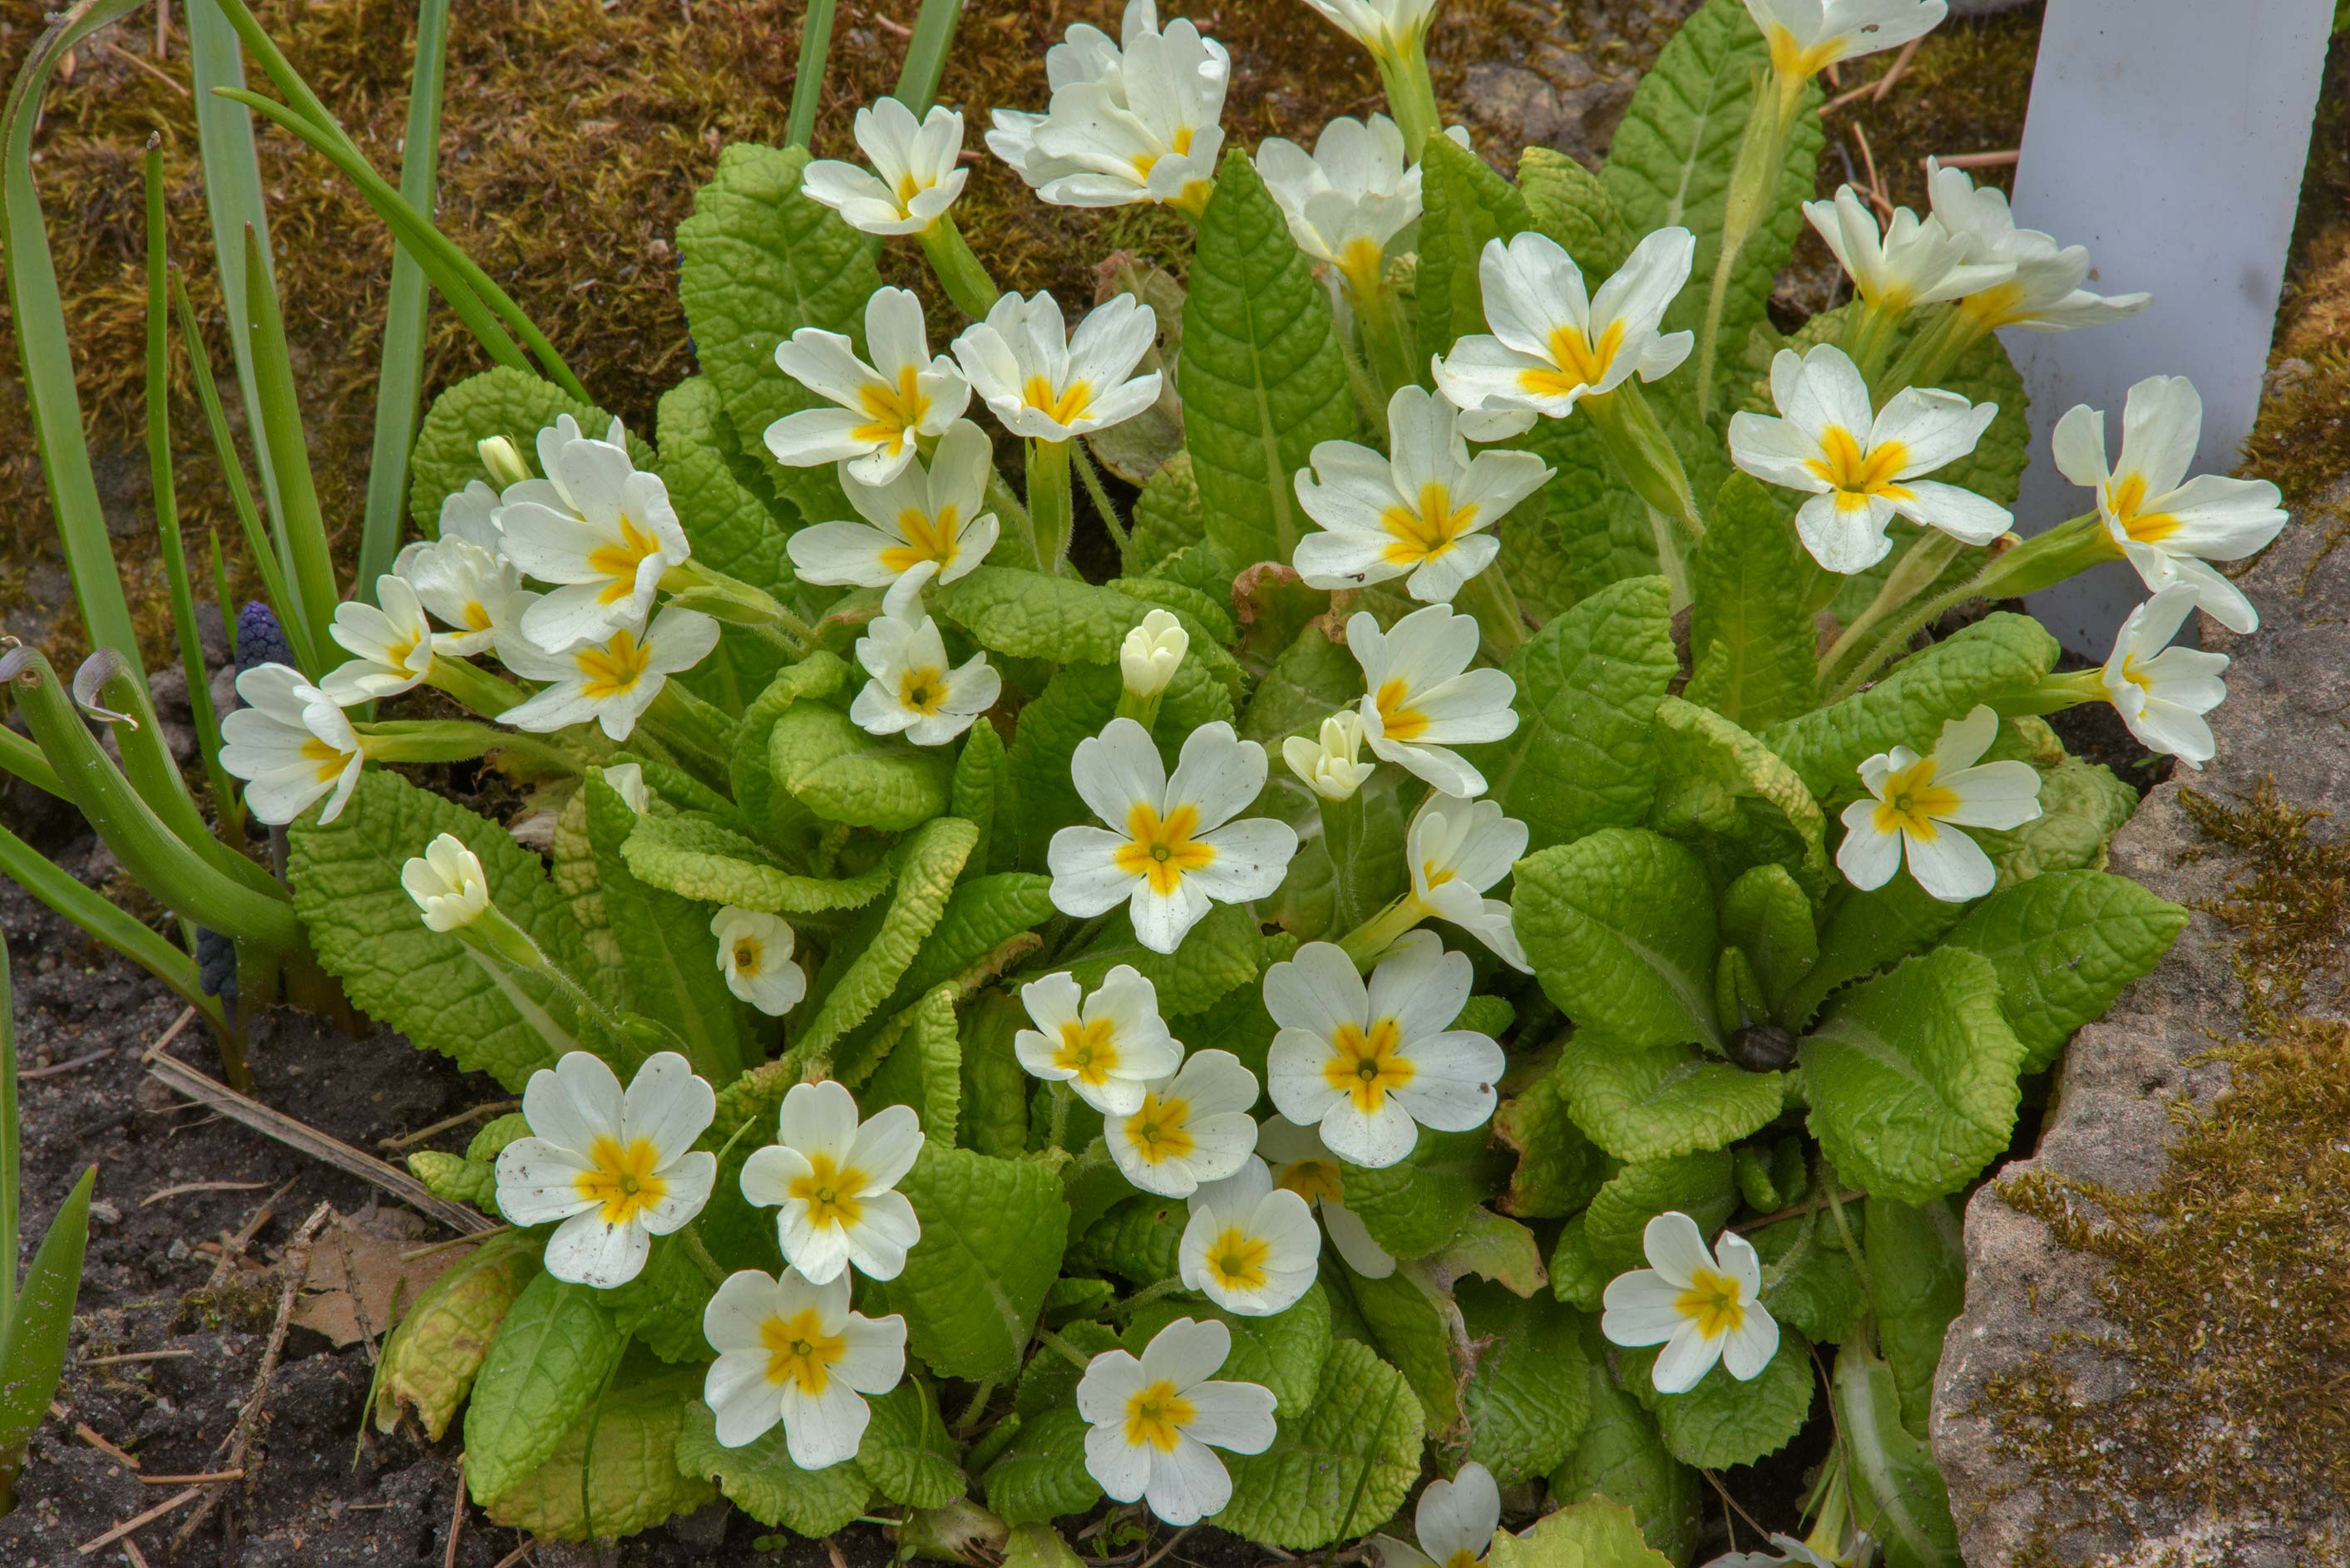 Yellow flowers of primrose (Primula) in Botanic...Institute. St.Petersburg, Russia